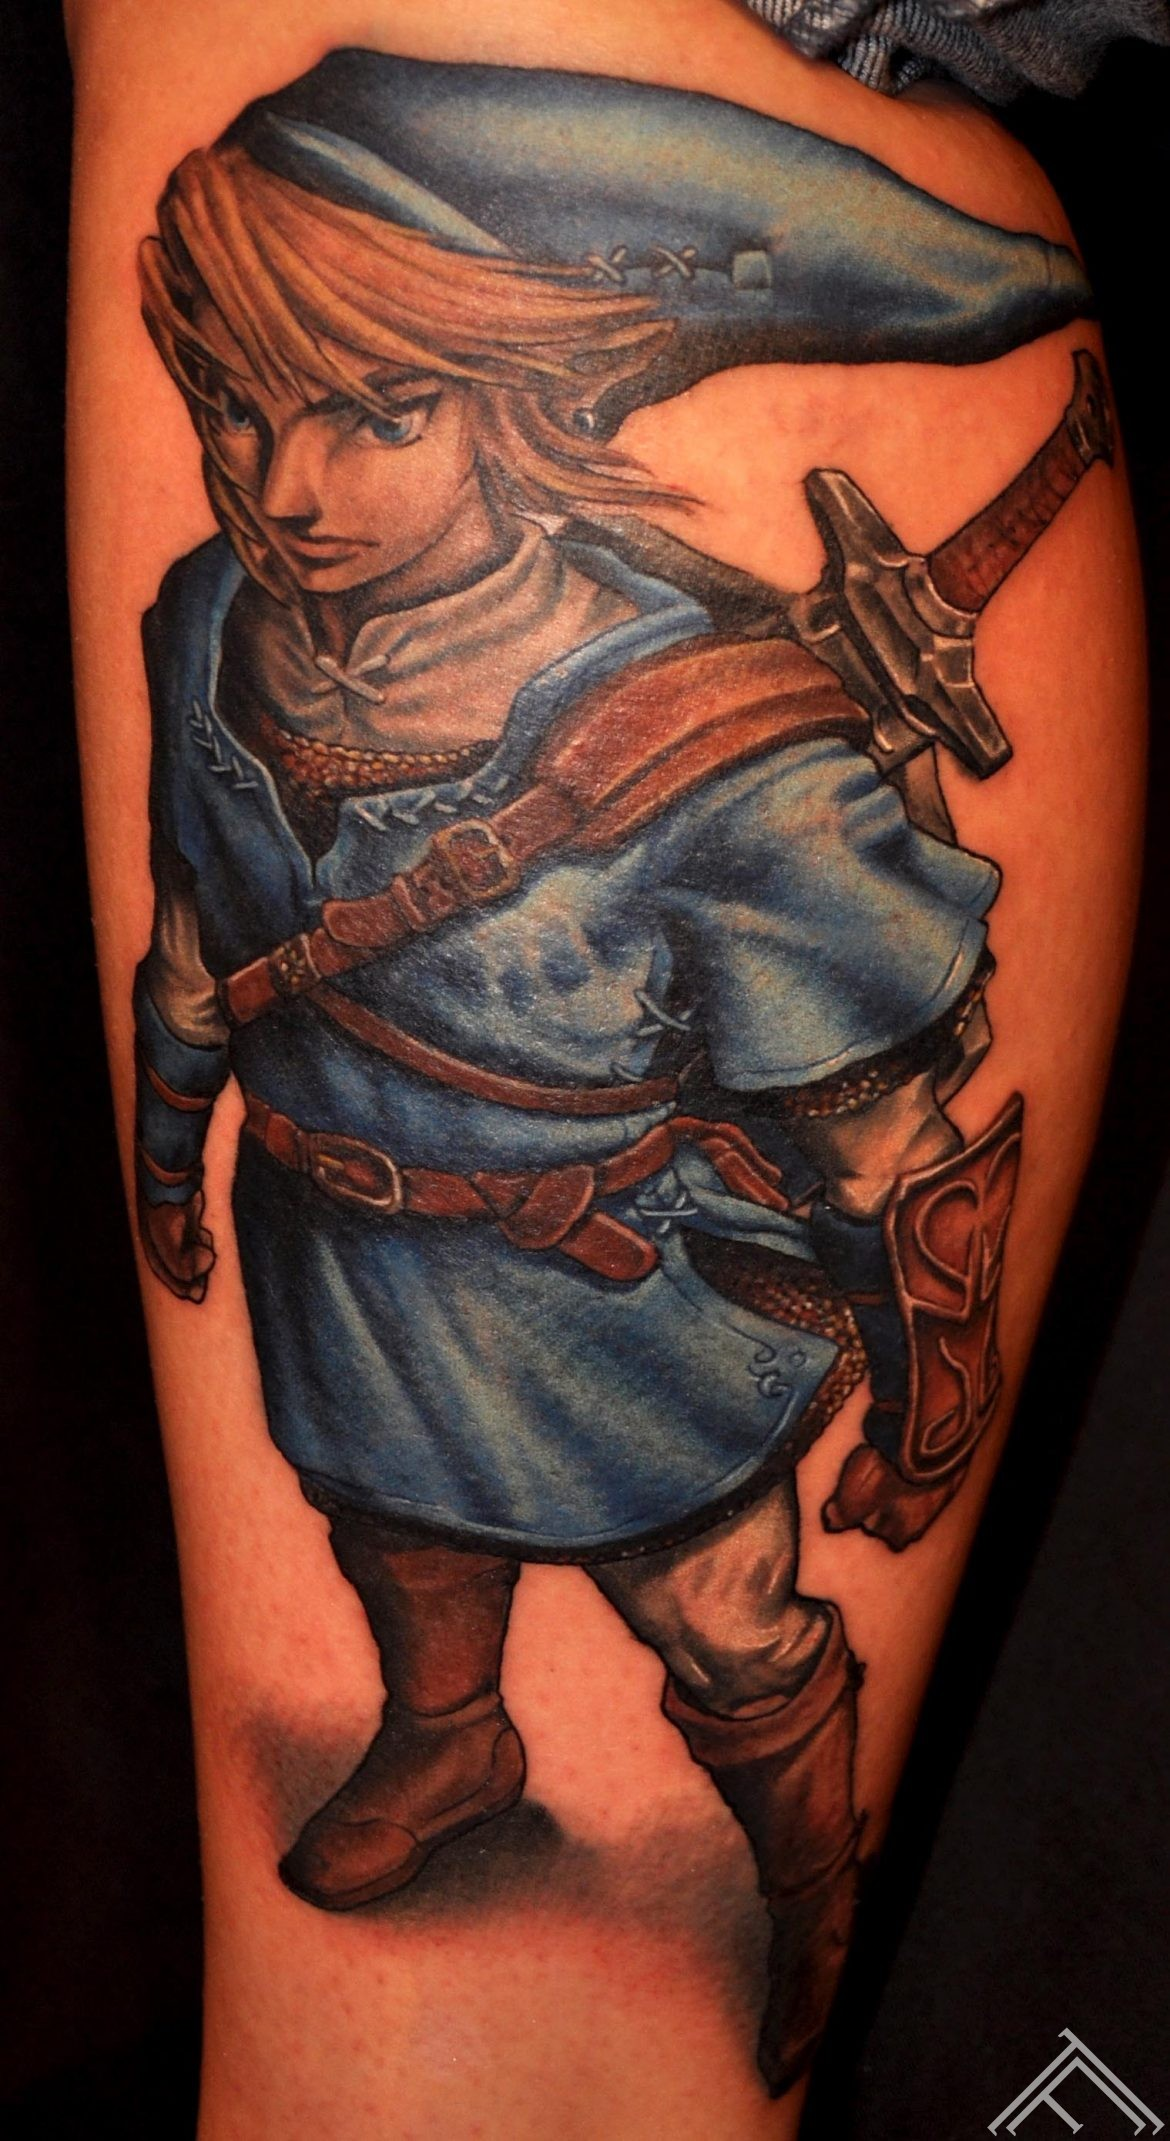 LegendofZelda_Link_tattoo_maris palvlo_tattoofrequency_tattoostudio_saloon_rigatattoo